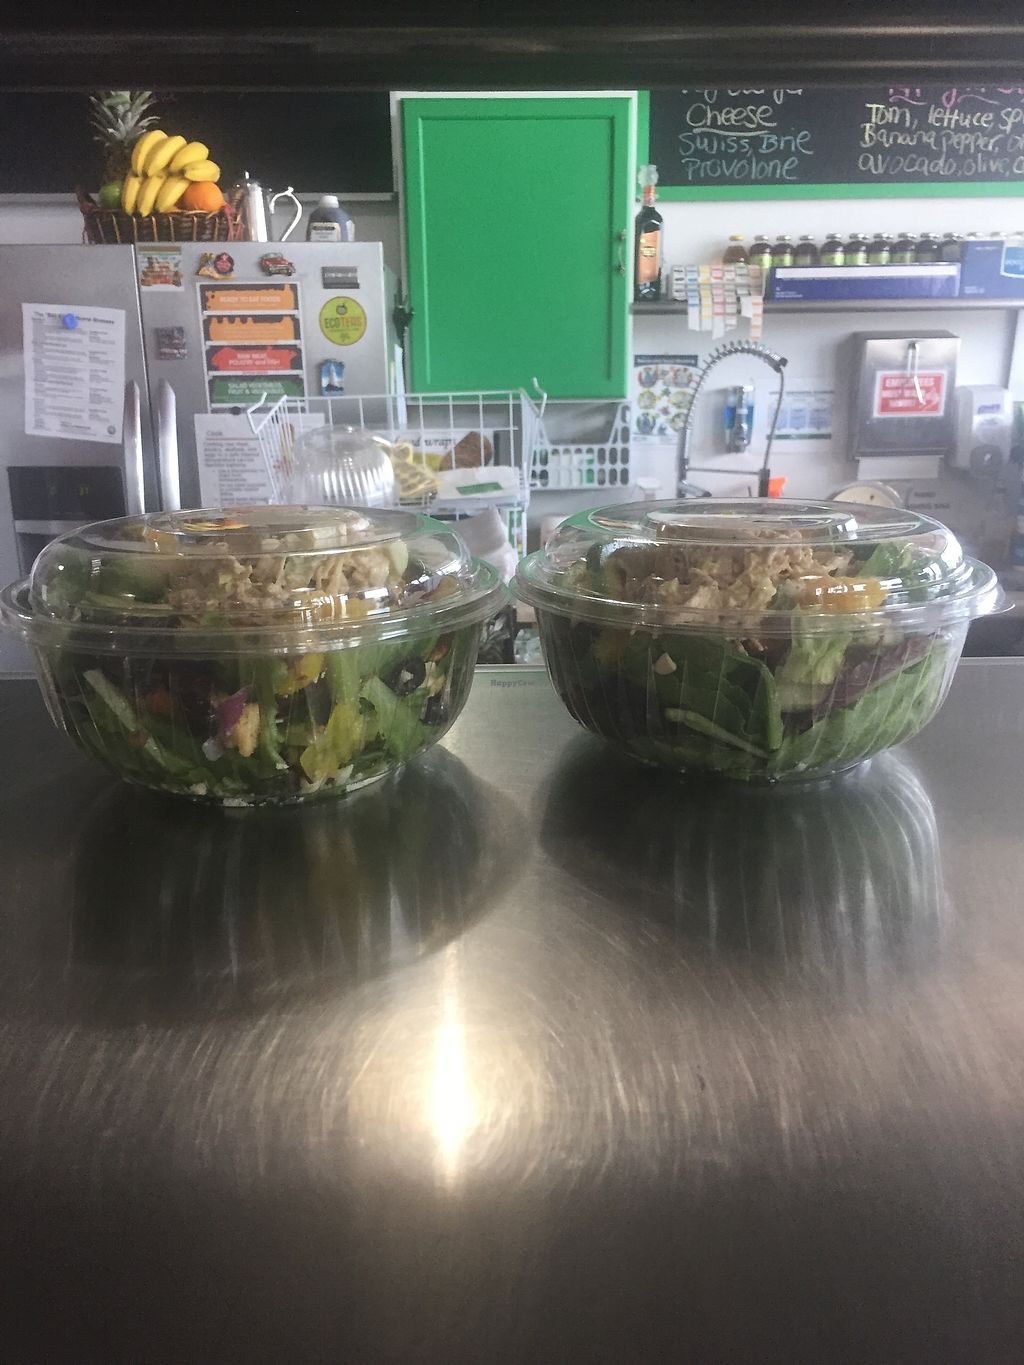 "Photo of Fresh Power Smoothies & Sandwiches  by <a href=""/members/profile/ssatar"">ssatar</a> <br/>organic tossed salad  <br/> February 9, 2018  - <a href='/contact/abuse/image/111531/356834'>Report</a>"